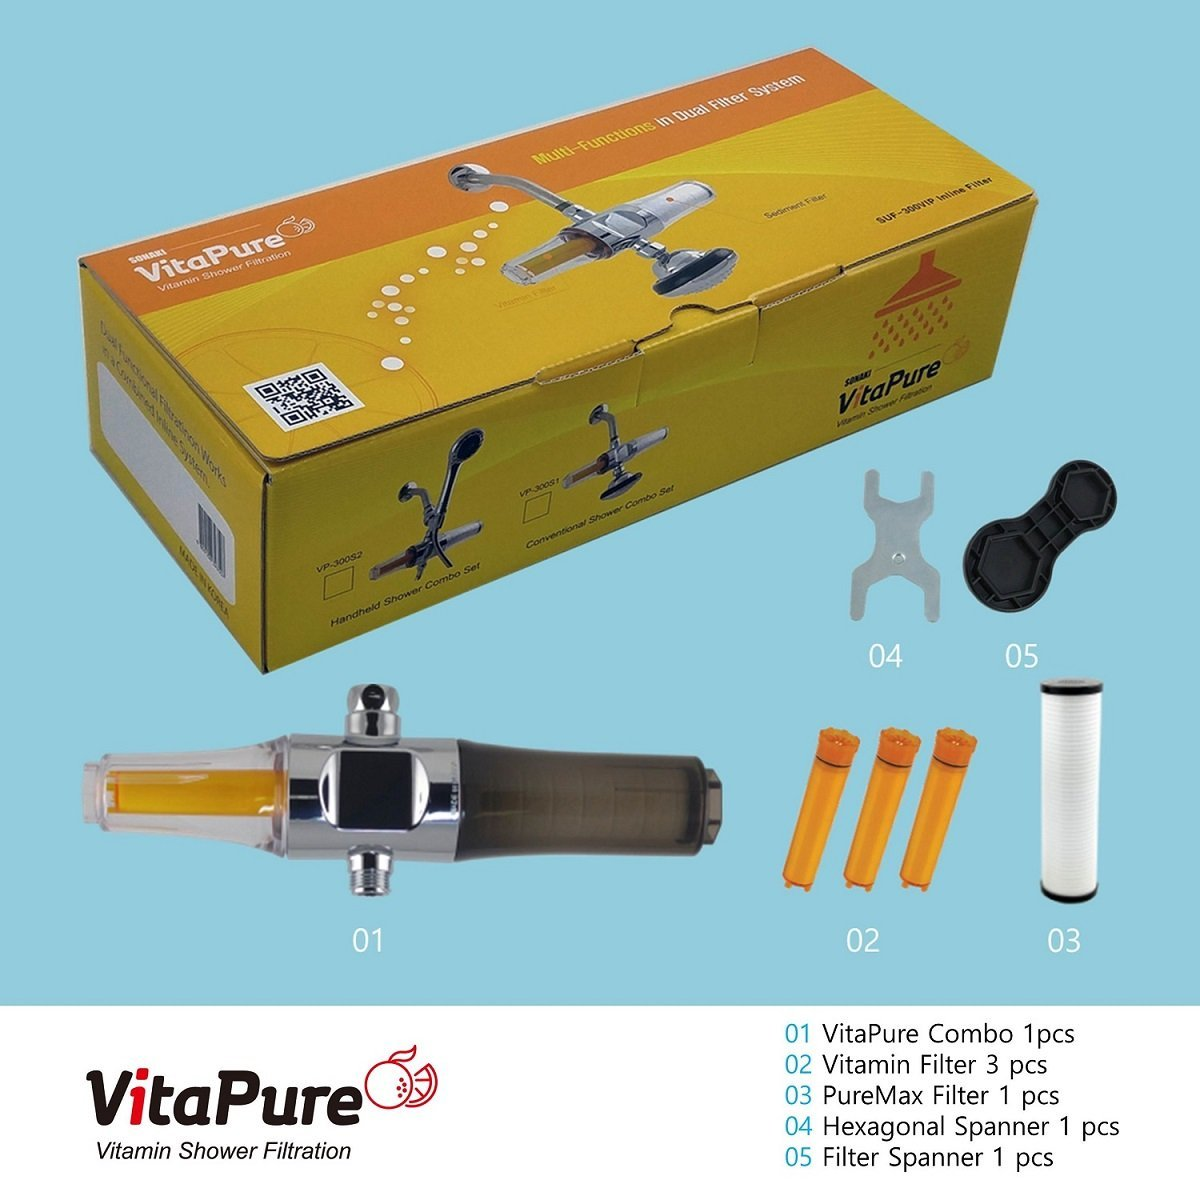 VitaPure Combo Shower & Water Filter, SUF-300VPX Premium for Anti-Bacteria & Dechlorination, Removing Contaminants & Heavy Metals in the water